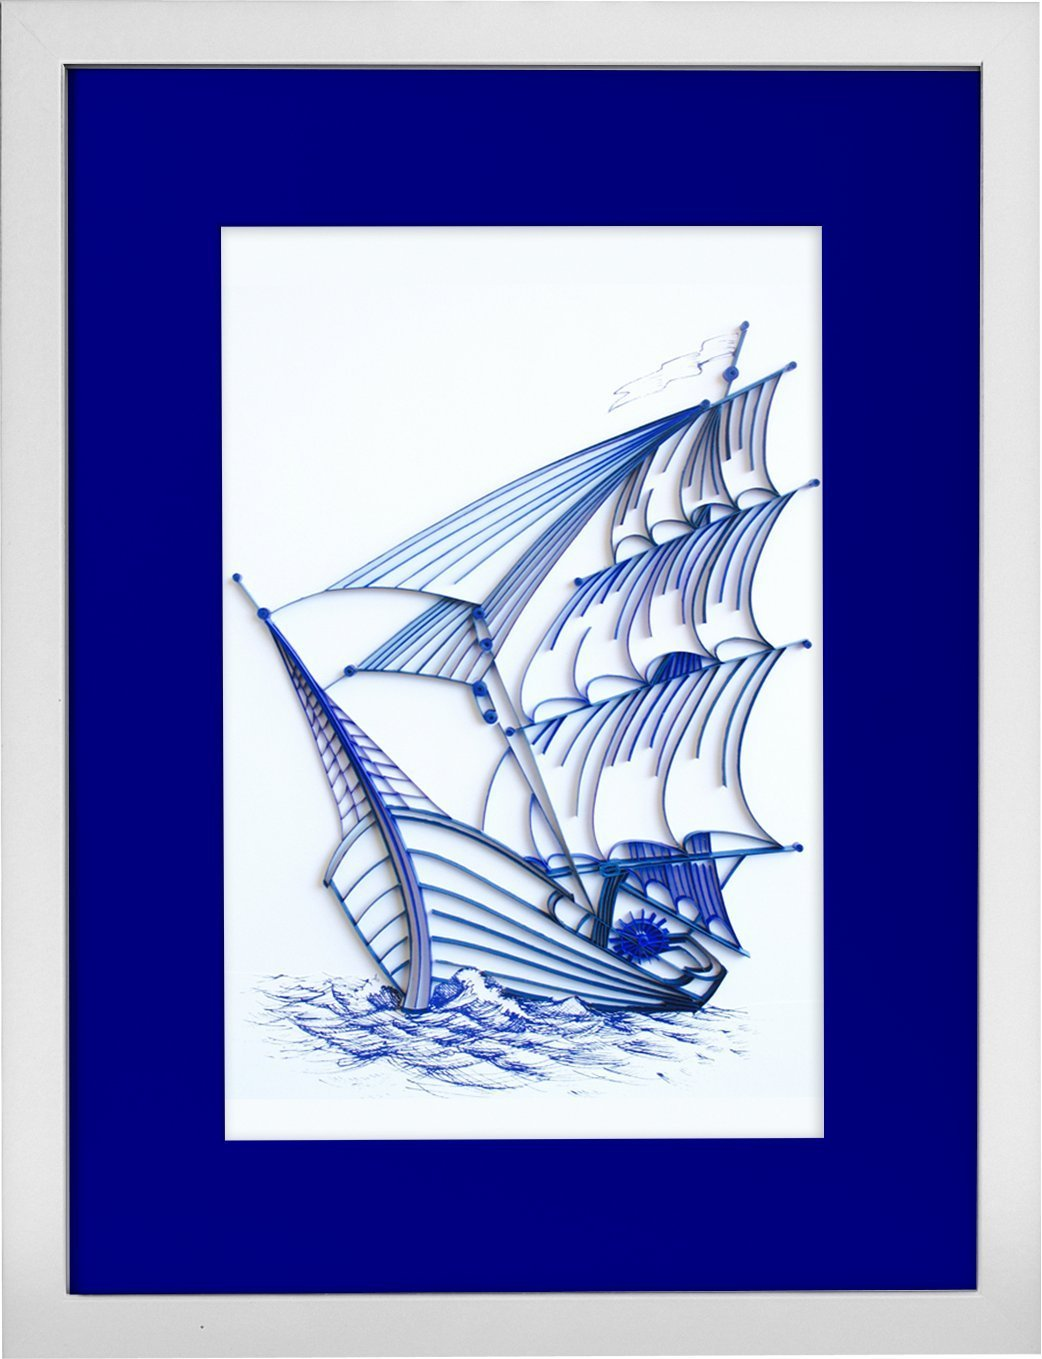 Sailing Ship - Modern Paper Quilled Wall Art for Home Decor (one of a kind paper quilling handcrafted piece made with love by an artist in California)